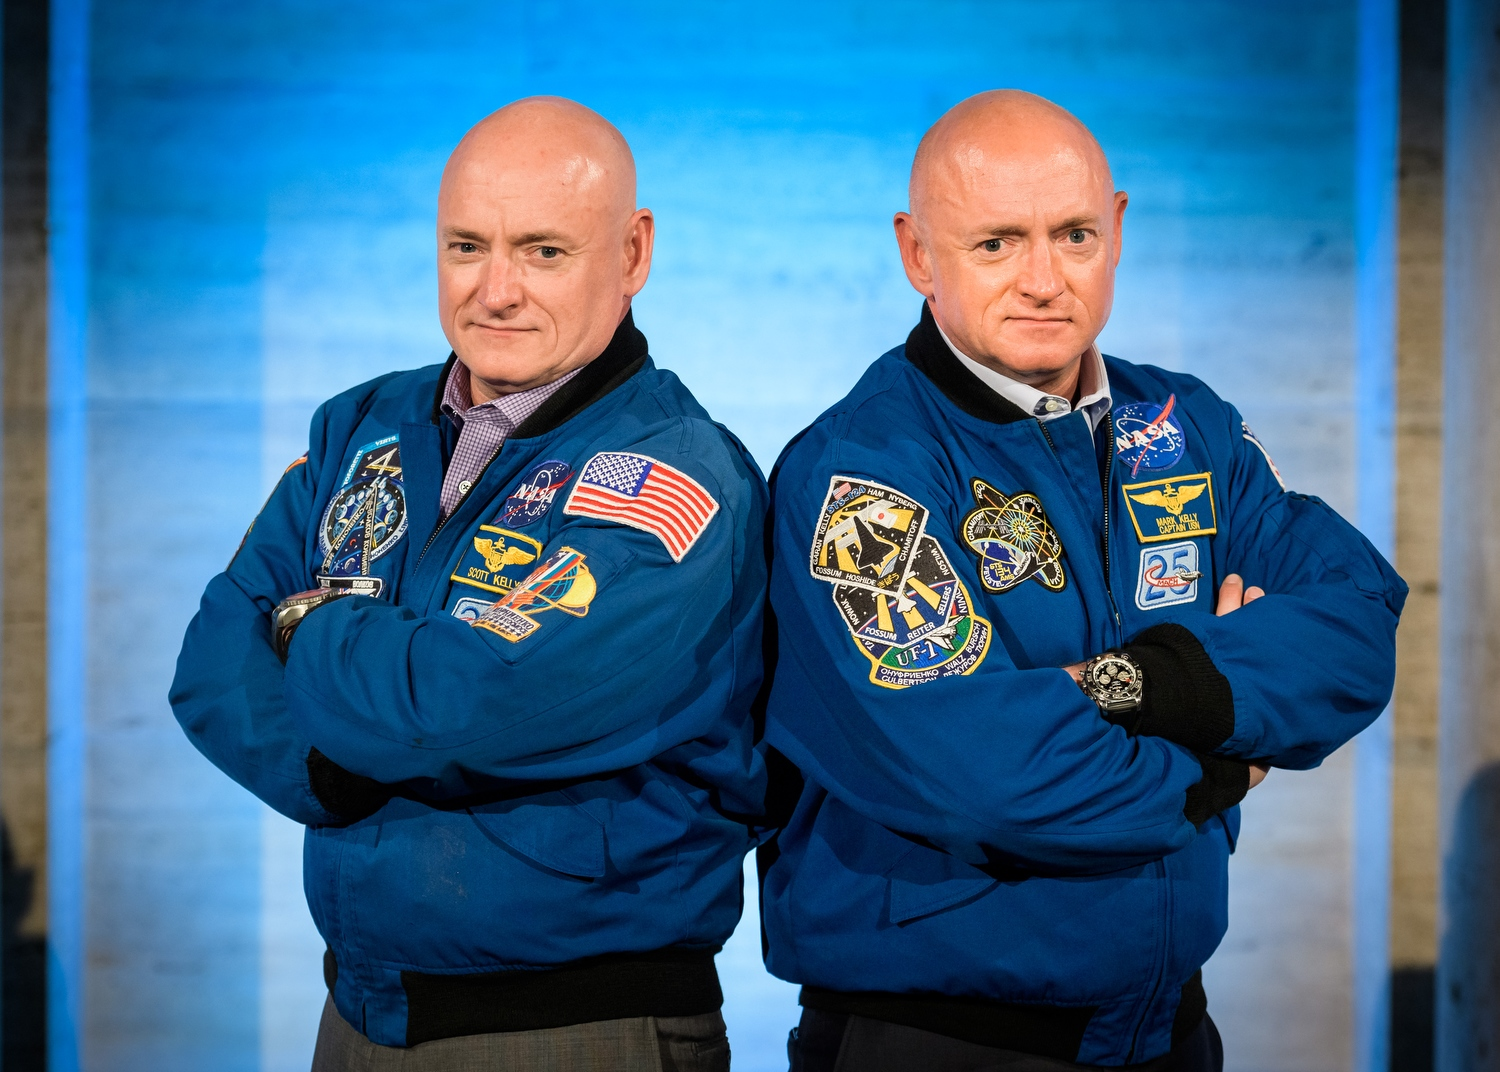 Captain Scott Kelly, History-Making US Astronaut & Retired US Navy Captain and Captain Mark Kelly, Commander of Space Shuttle Endeavour's Final Mission & Space and Aviation Contributor for NBC News/MSNBC at The 2016 Goldman Sachs Professional Investor Forum, The Path To Opportunity for Cross Channel in NYC; 5/12/16